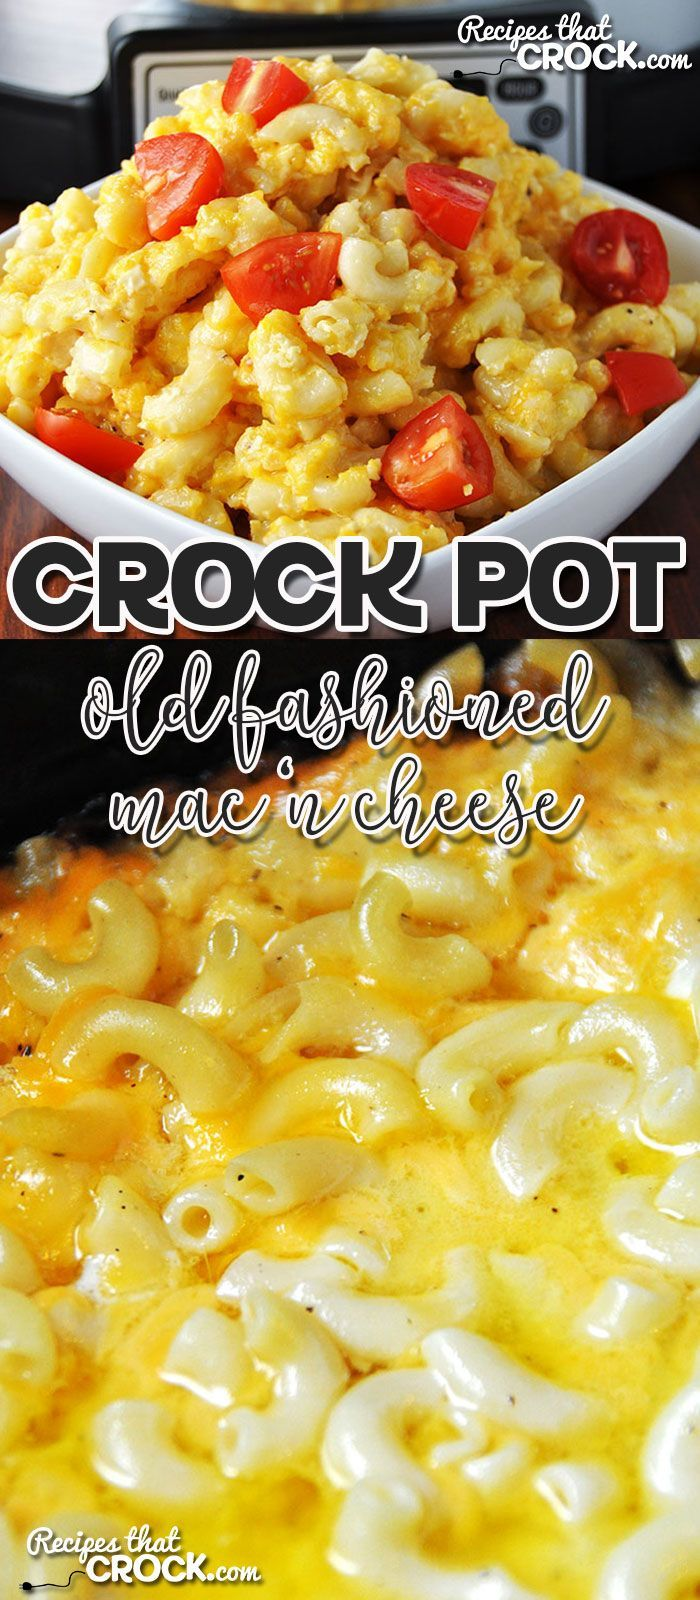 This Old Fashioned Crock Pot Mac 'n Cheese is incredibly easy to make and will…